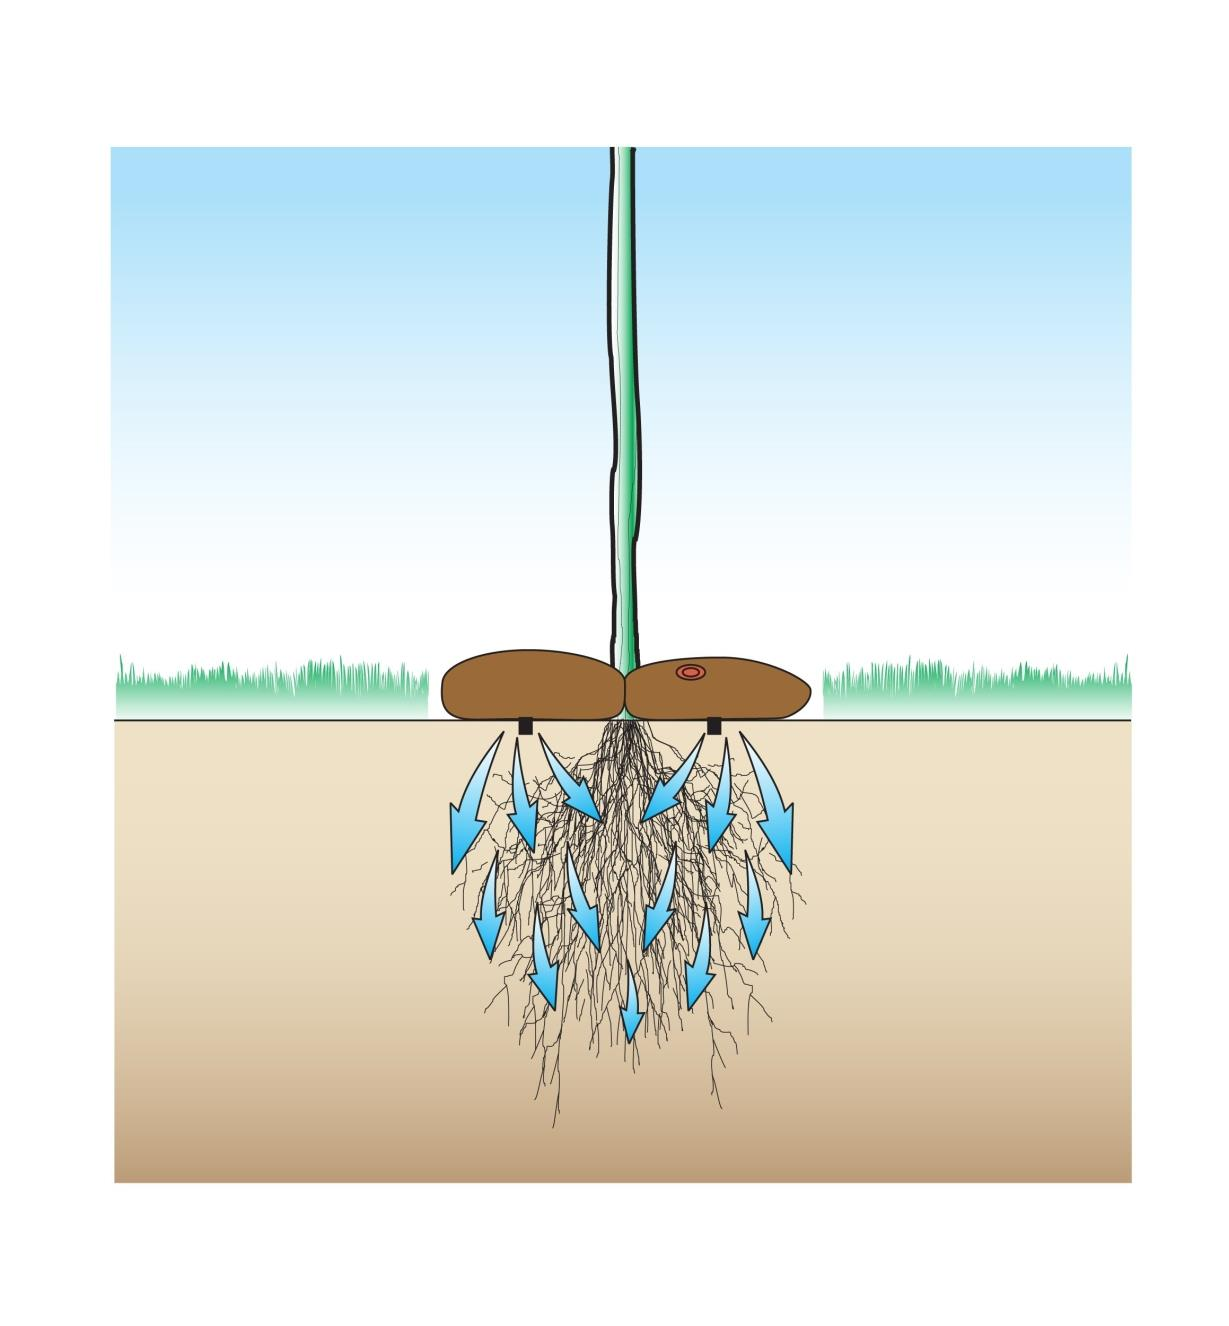 Cutaway illustration of tree roots being watered by the Tree Irrigator